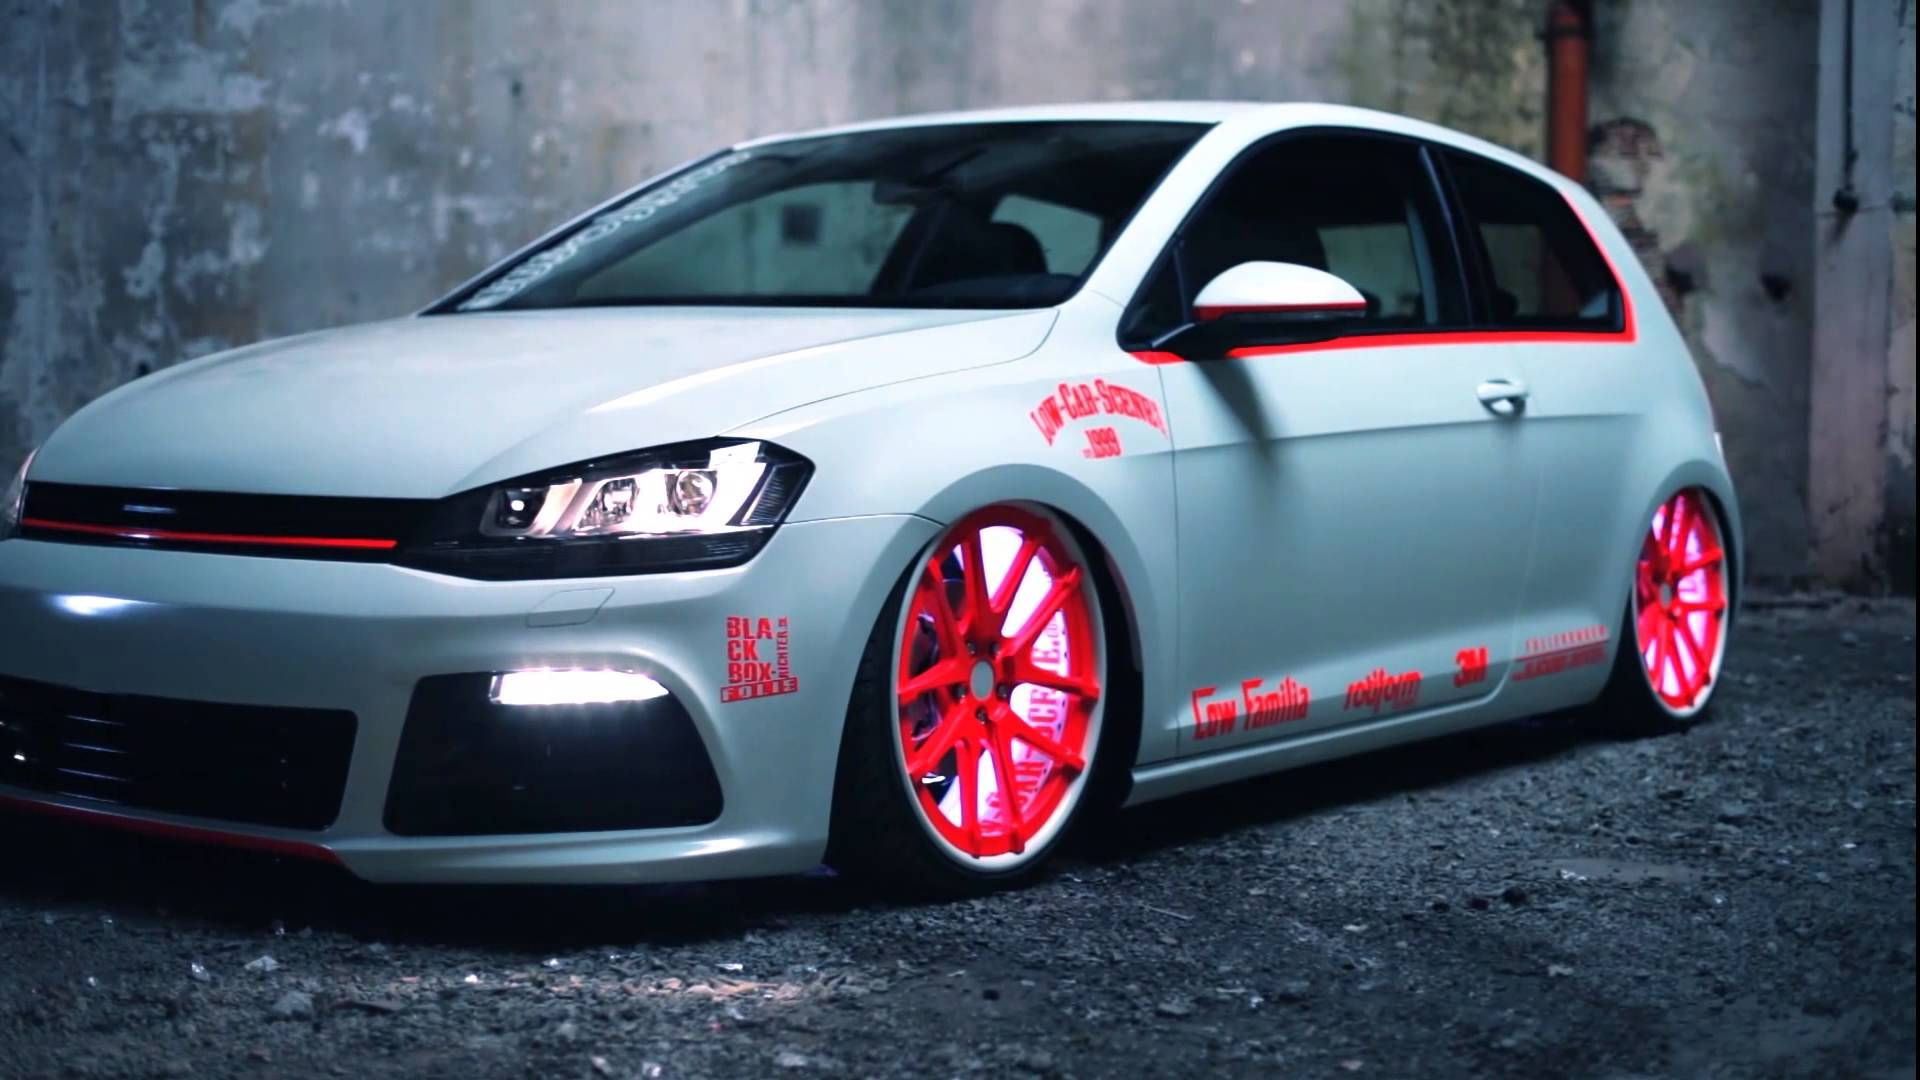 vw golf 7 2013 light tron tuning showcar awesome vw 39 s. Black Bedroom Furniture Sets. Home Design Ideas